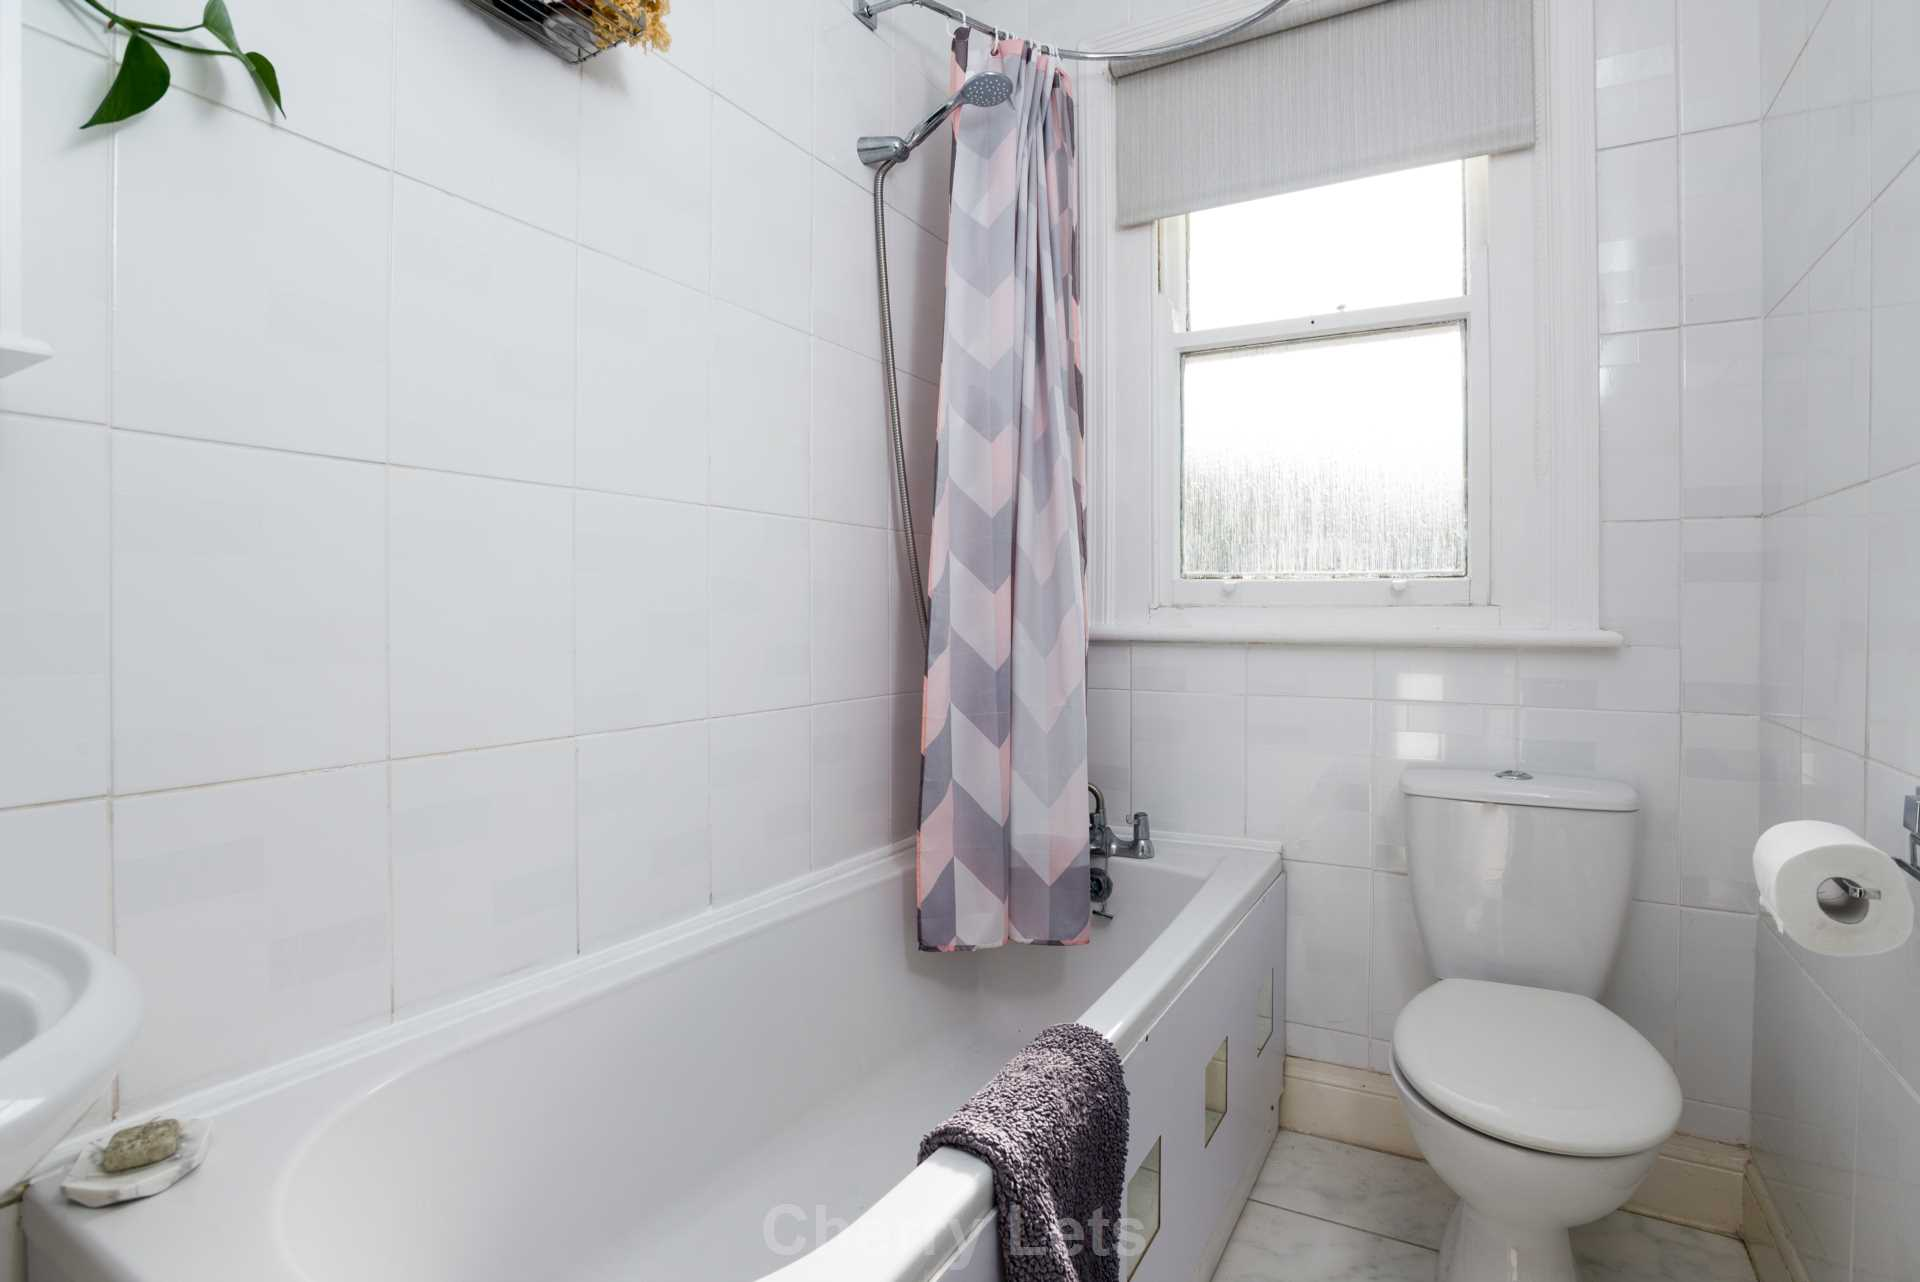 1 bed flat to rent in Bloxham Road, Banbury, OX16  - Property Image 8